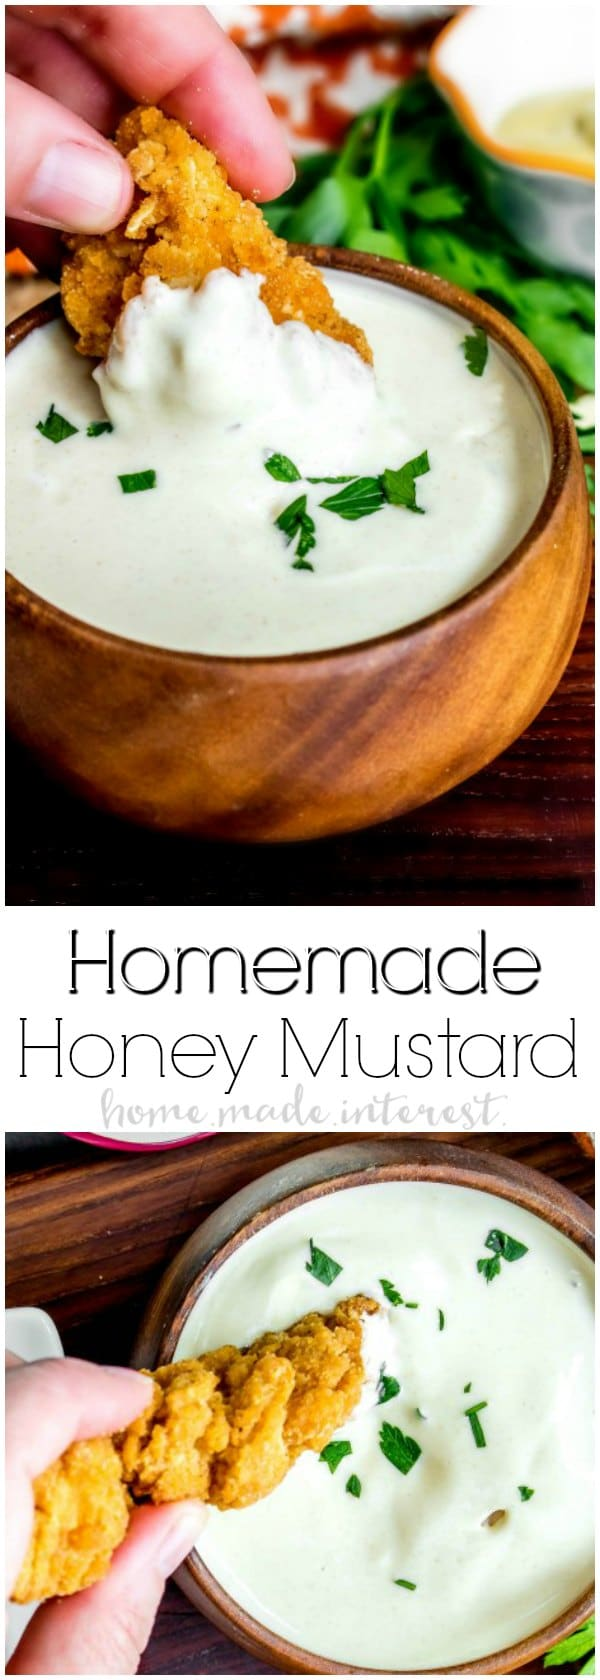 Who doesn't love Honey Mustard sauce on their chicken fingers, or french fries, or ham sandwich?! This homemade honey mustard sauce is an easy honey mustard recipe that uses wholesome, ingredients to make a healthy honey mustard recipe.